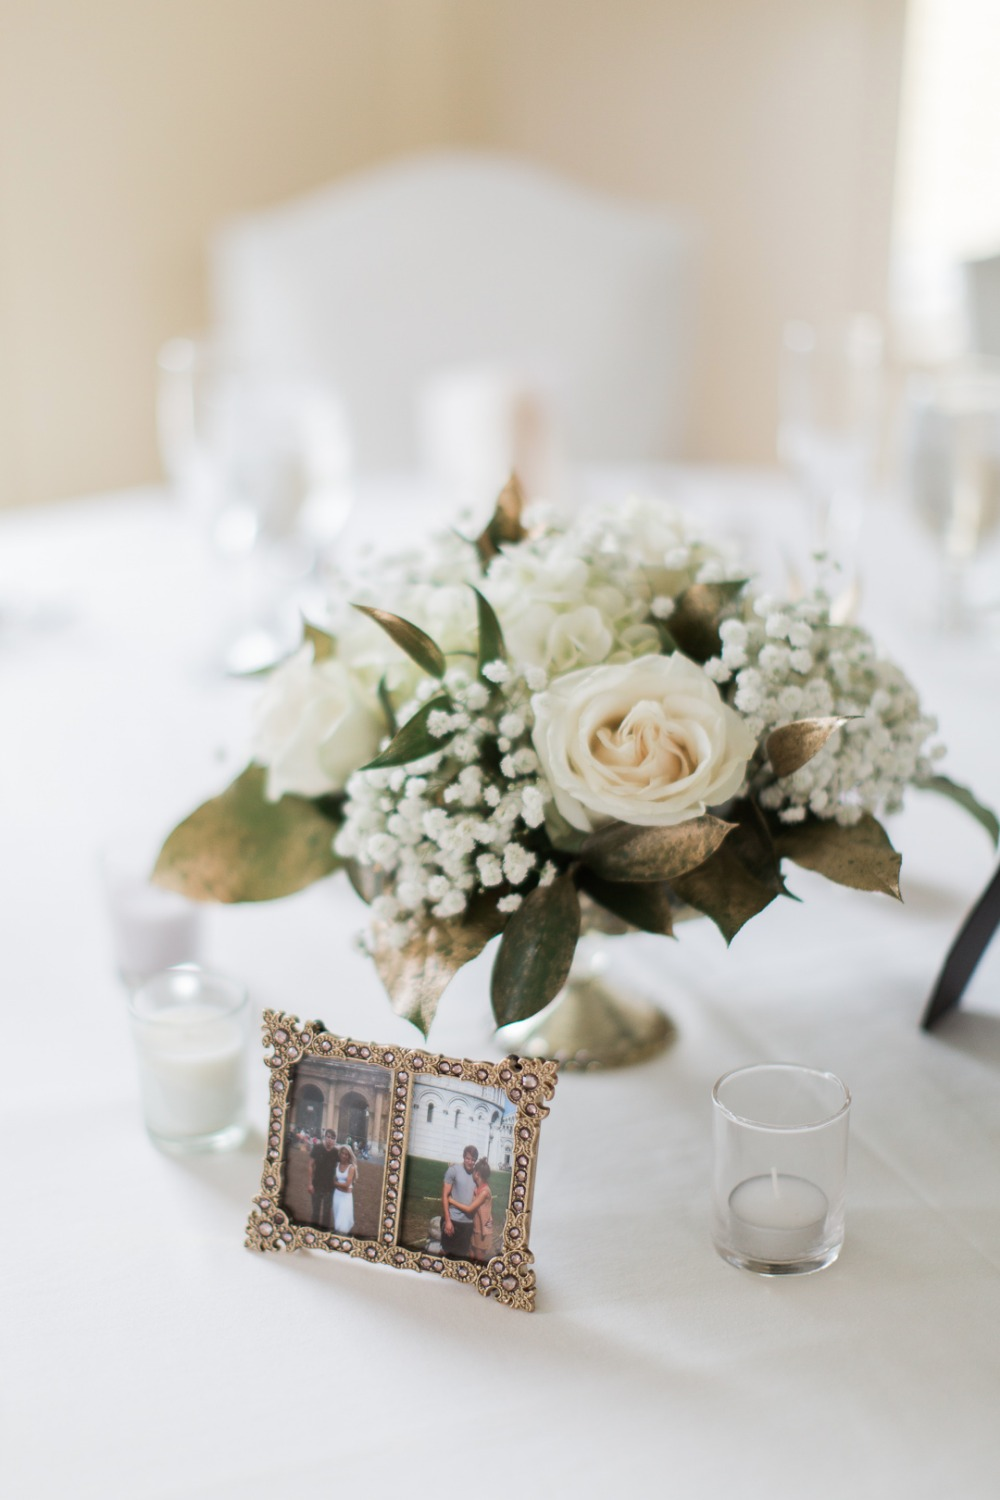 Picture and floral centerpiece